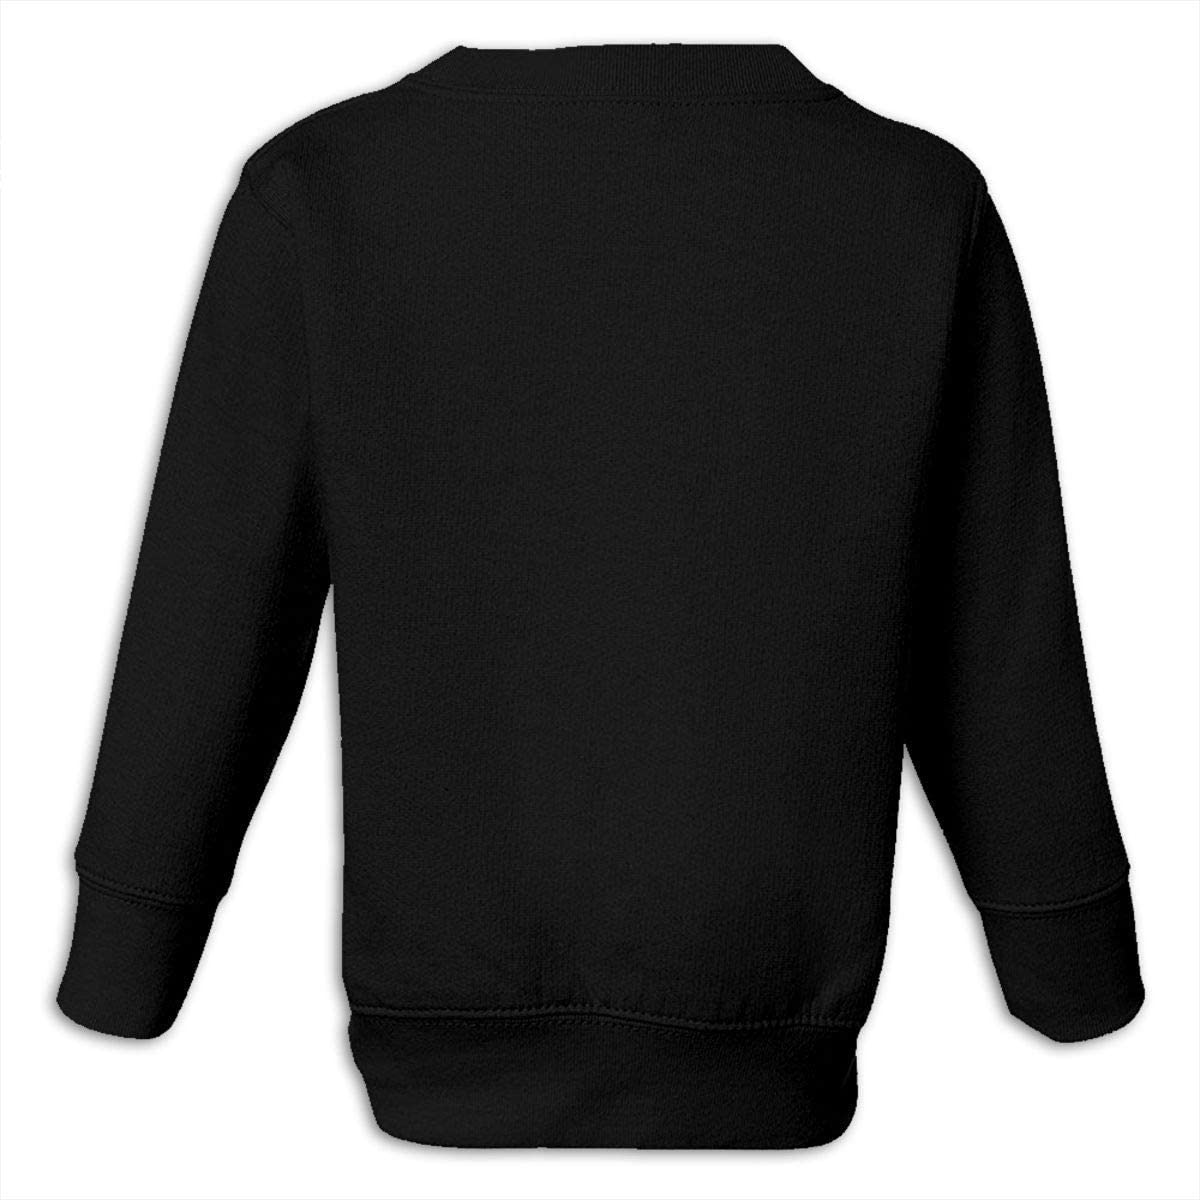 Parkour Art Boys Girls Pullover Sweaters Crewneck Sweatshirts Clothes for 2-6 Years Old Children